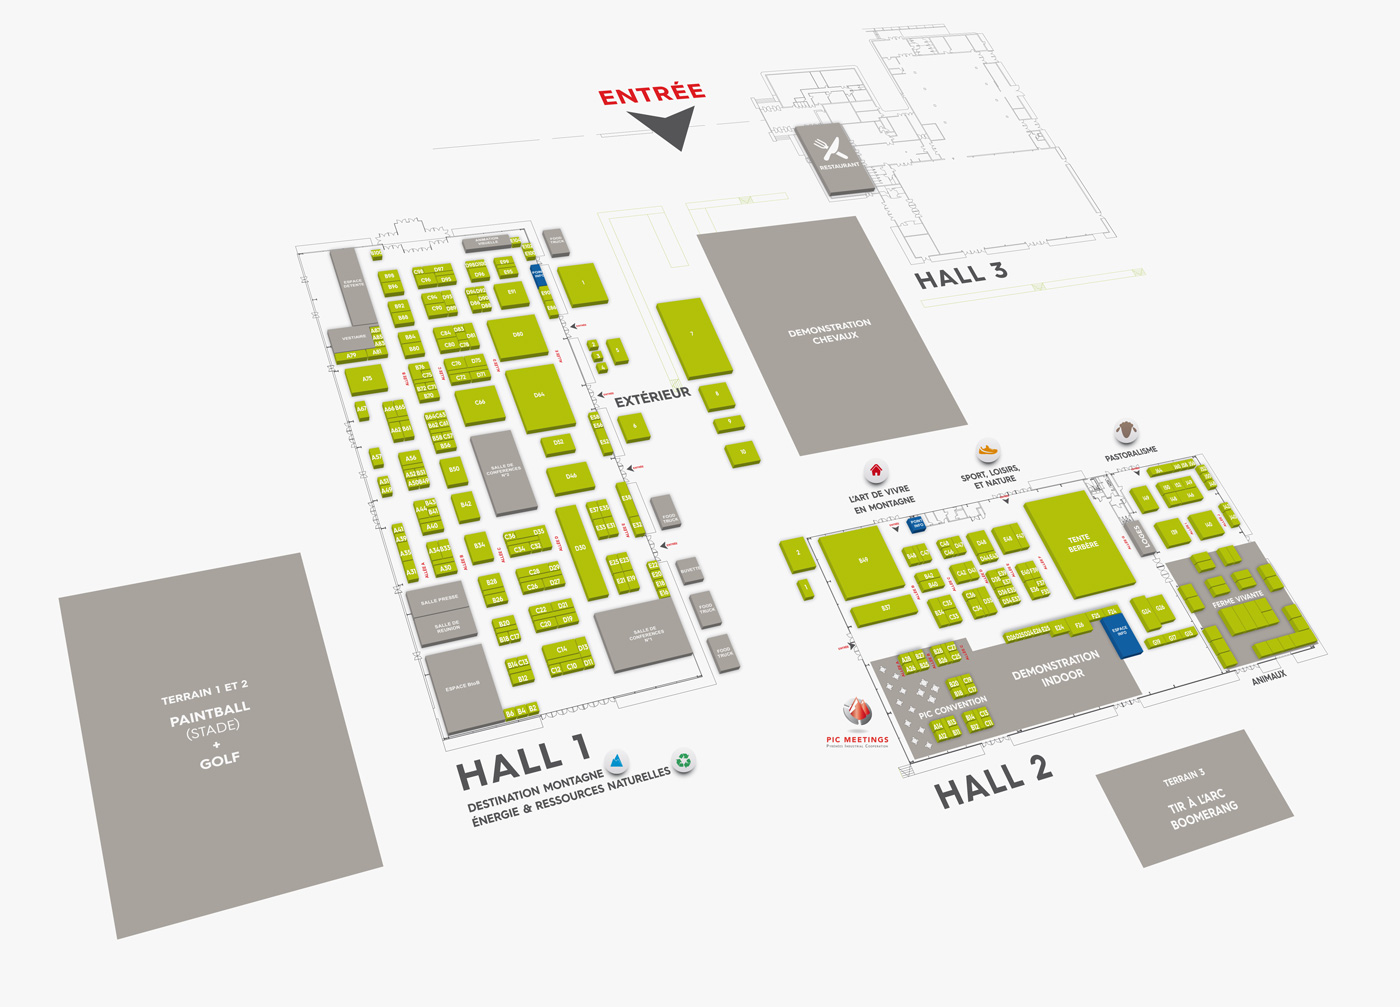 Mountain Business Summit Mbs-2017-floor-map-grey